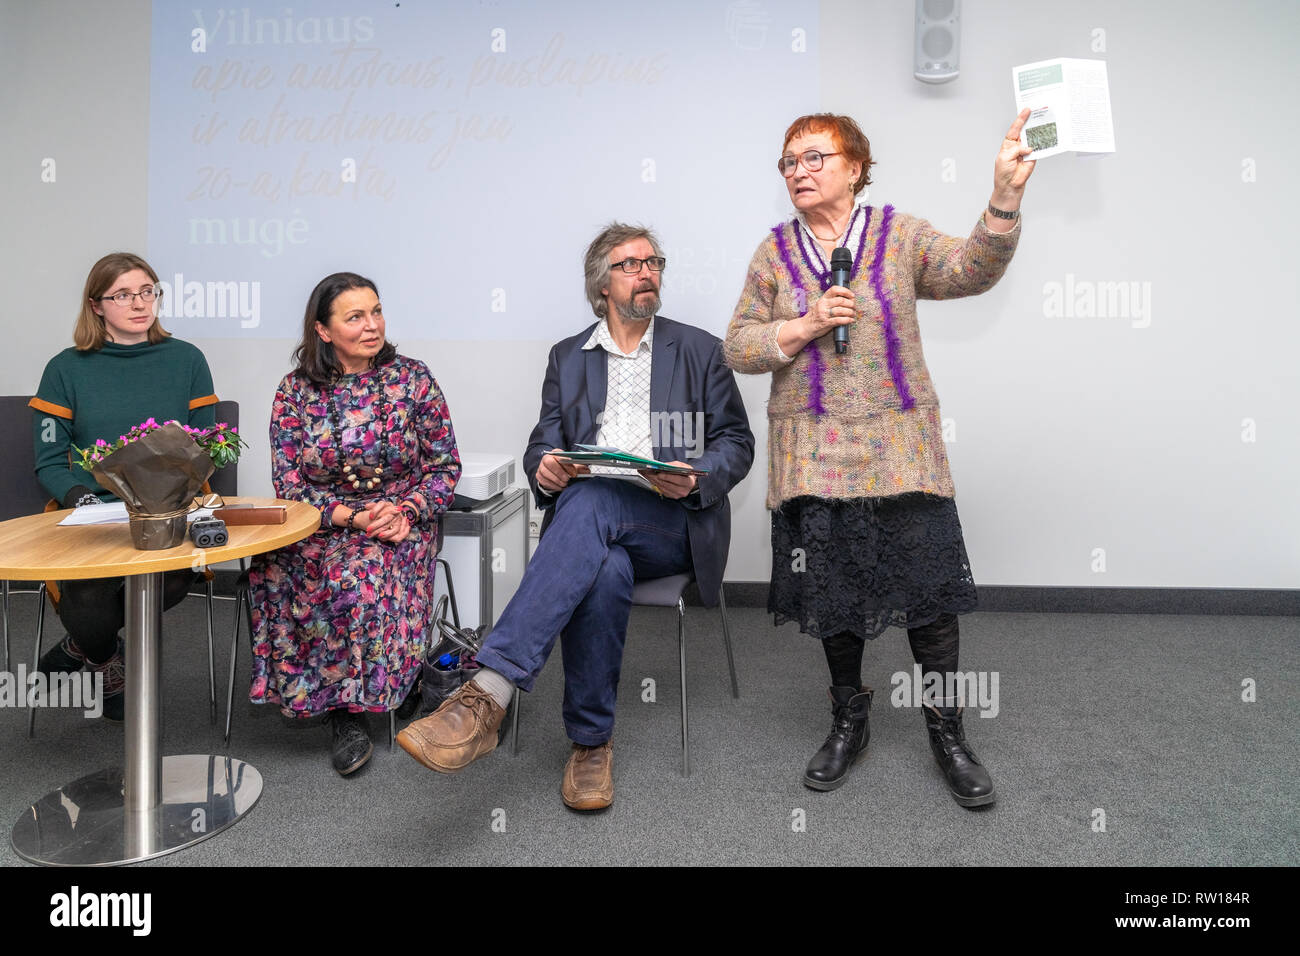 The four-day 20th International Vilnius Book Fair.Presentation of the book `My friend Lapinskas` by russian writer V. Ogarkov about Lithuanian officer - Stock Image